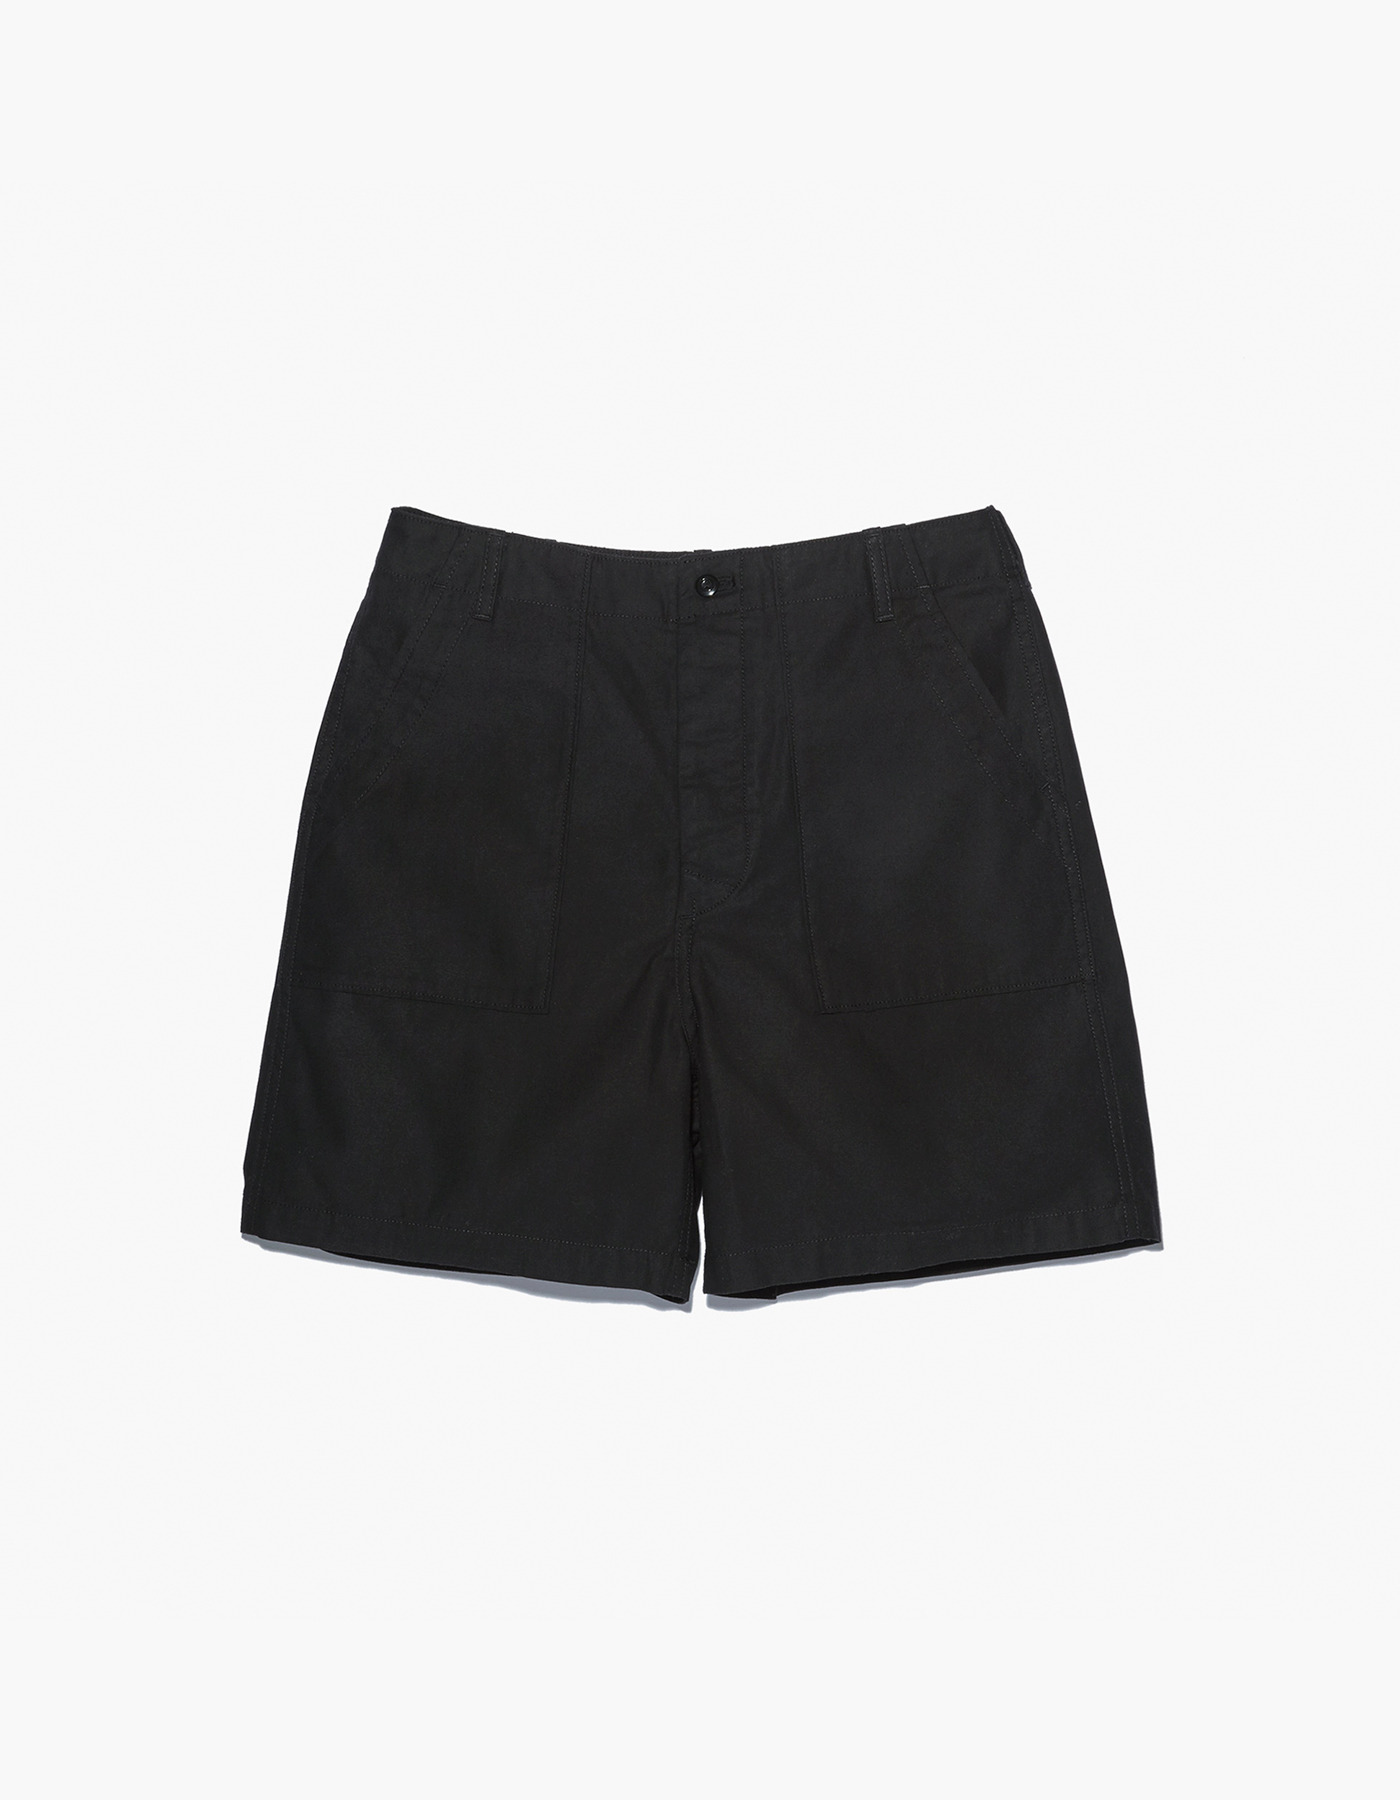 FATIGUE SHORTS / BLACK (M)